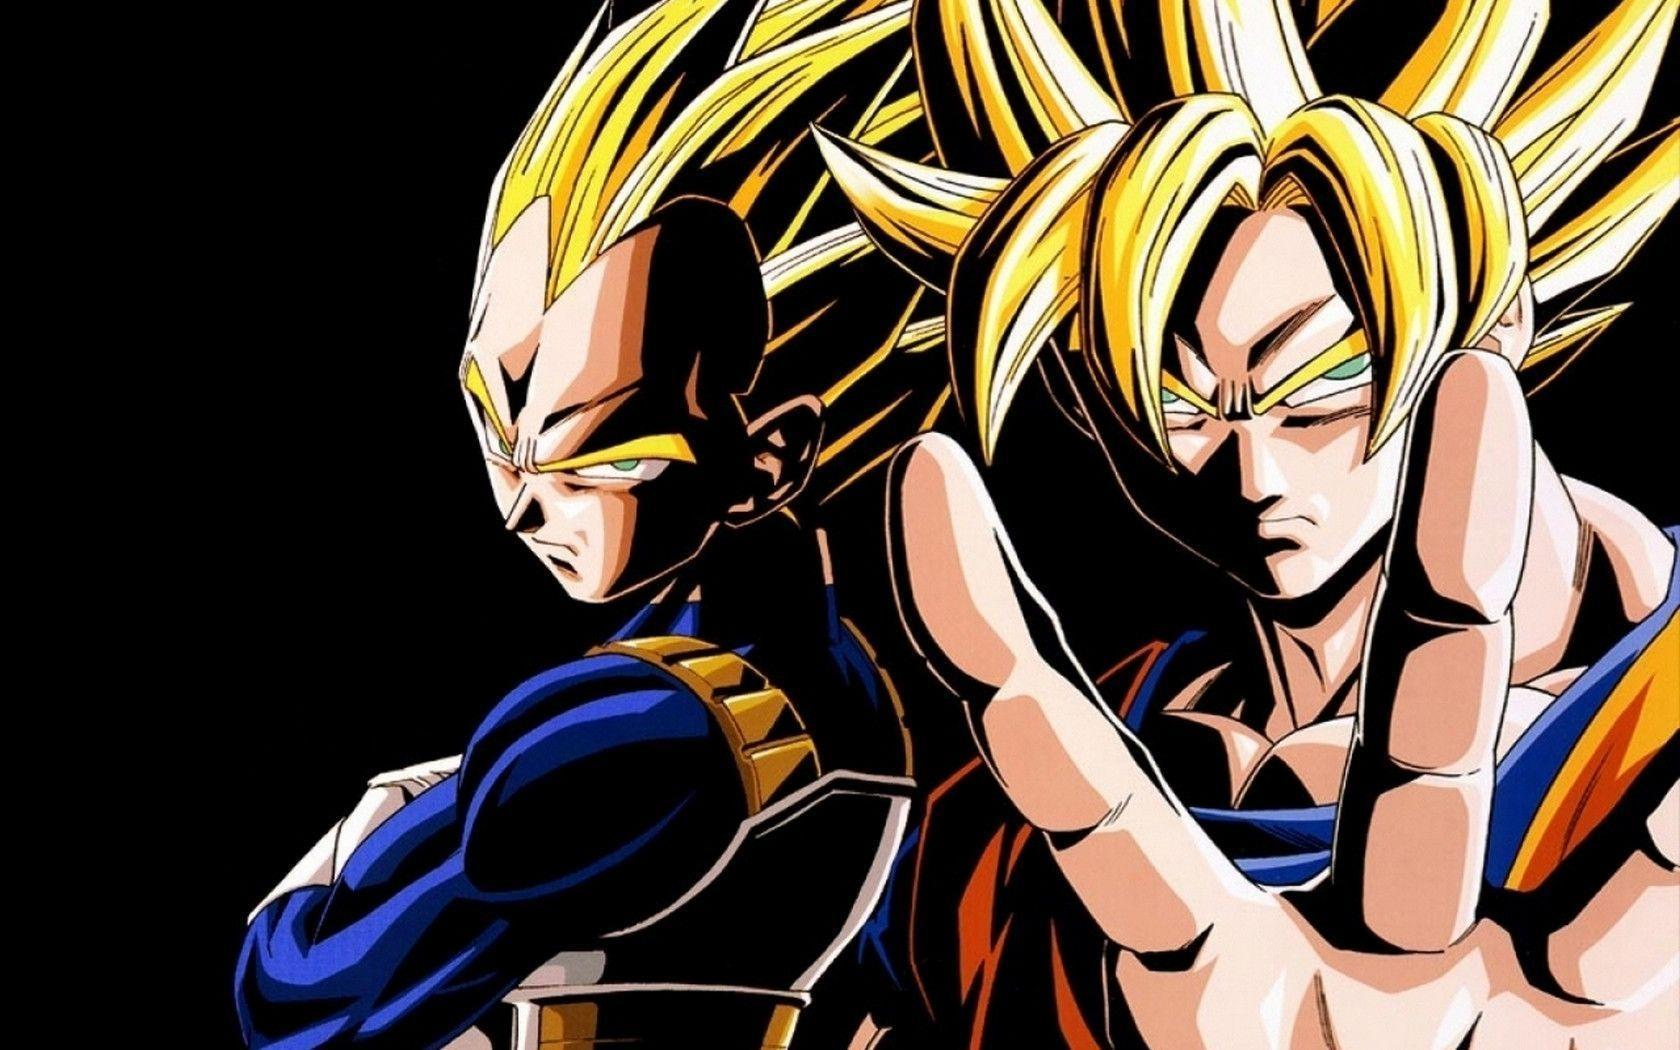 Dragon Ball Hd Wallpapers Top Free Dragon Ball Hd Backgrounds